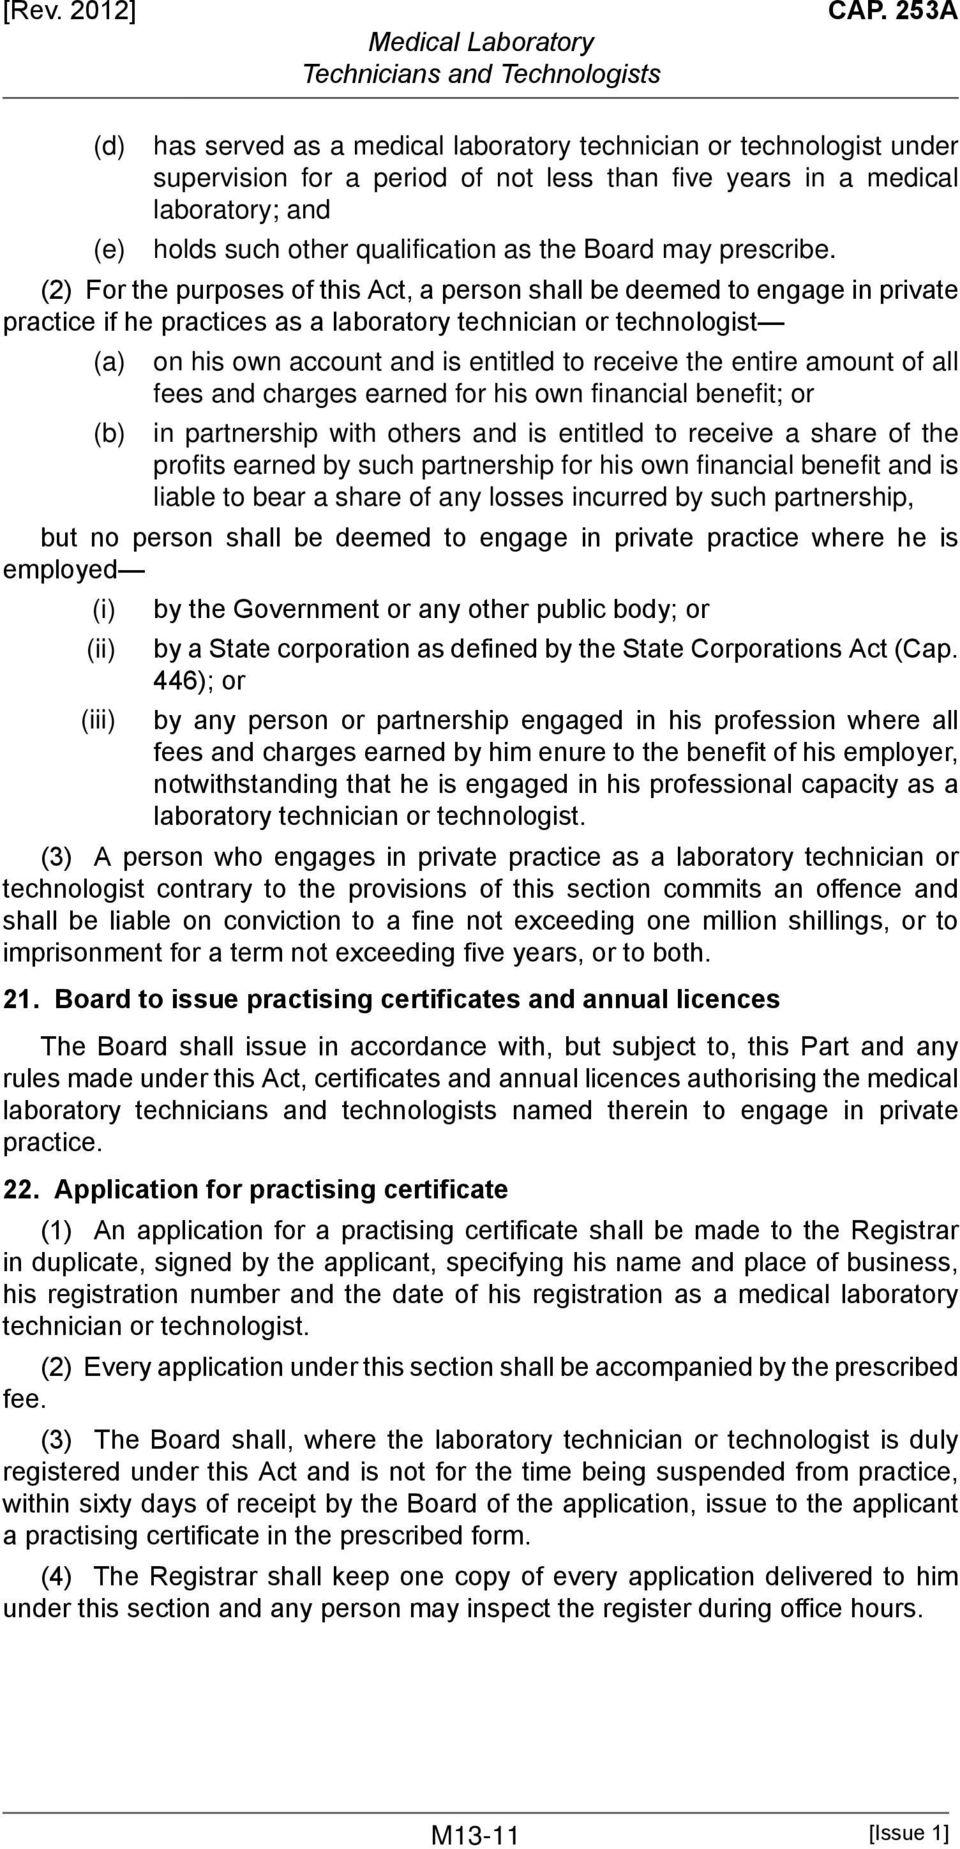 (2) For the purposes of this Act, a person shall be deemed to engage in private practice if he practices as a laboratory technician or technologist on his own account and is entitled to receive the